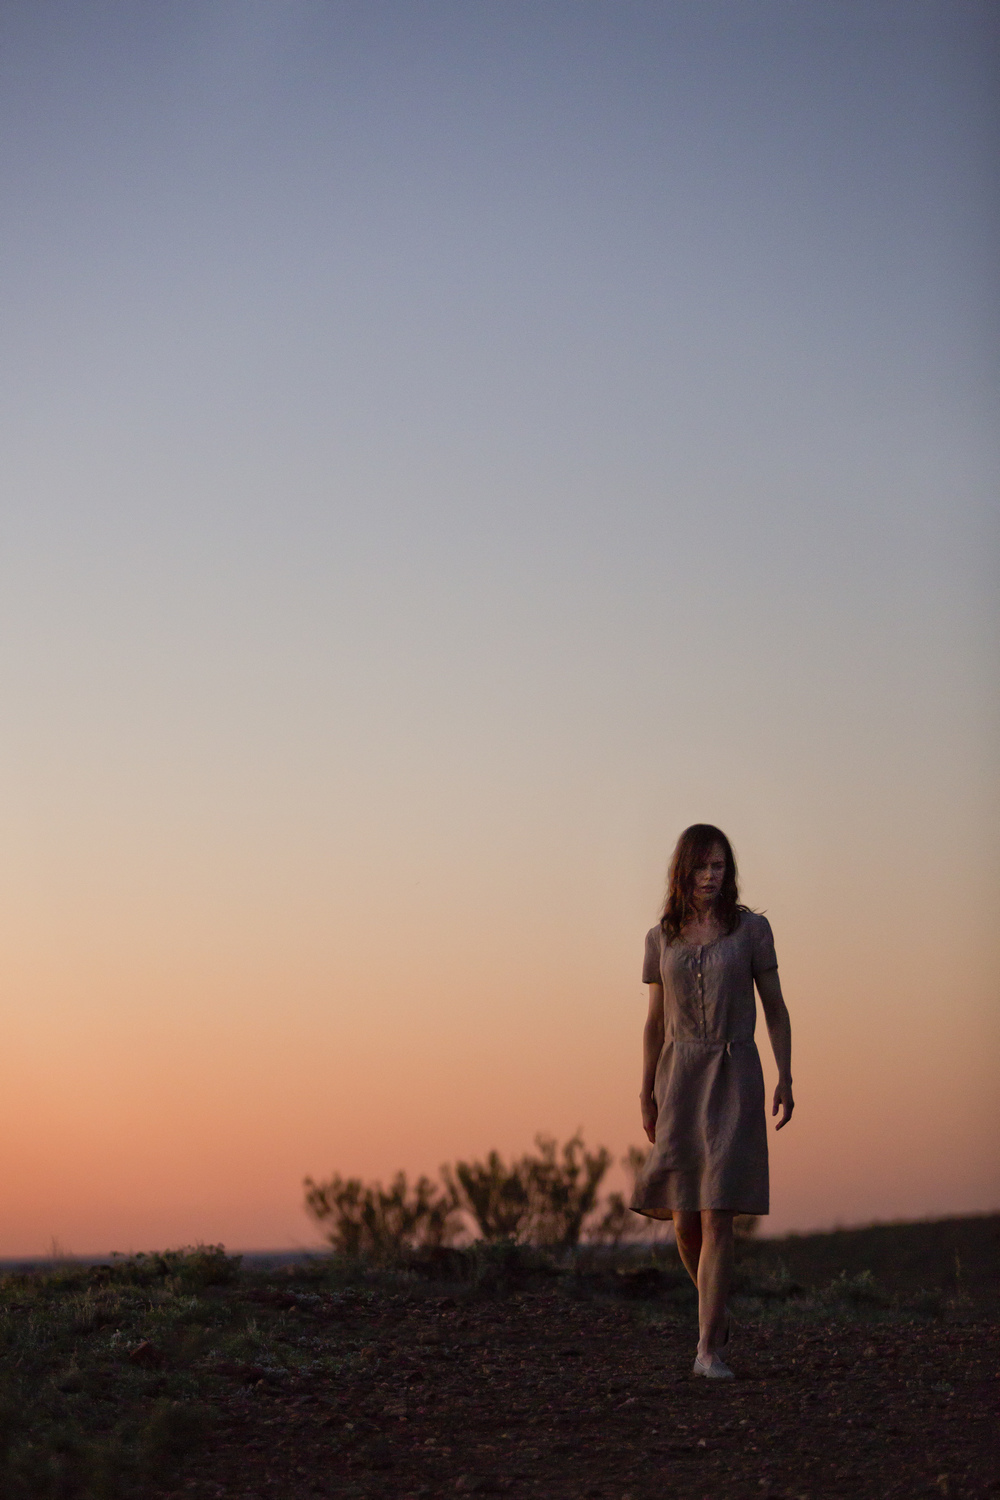 SL1_Catherine Parker (Nicole Kidman)_Walking At Sunset.jpg